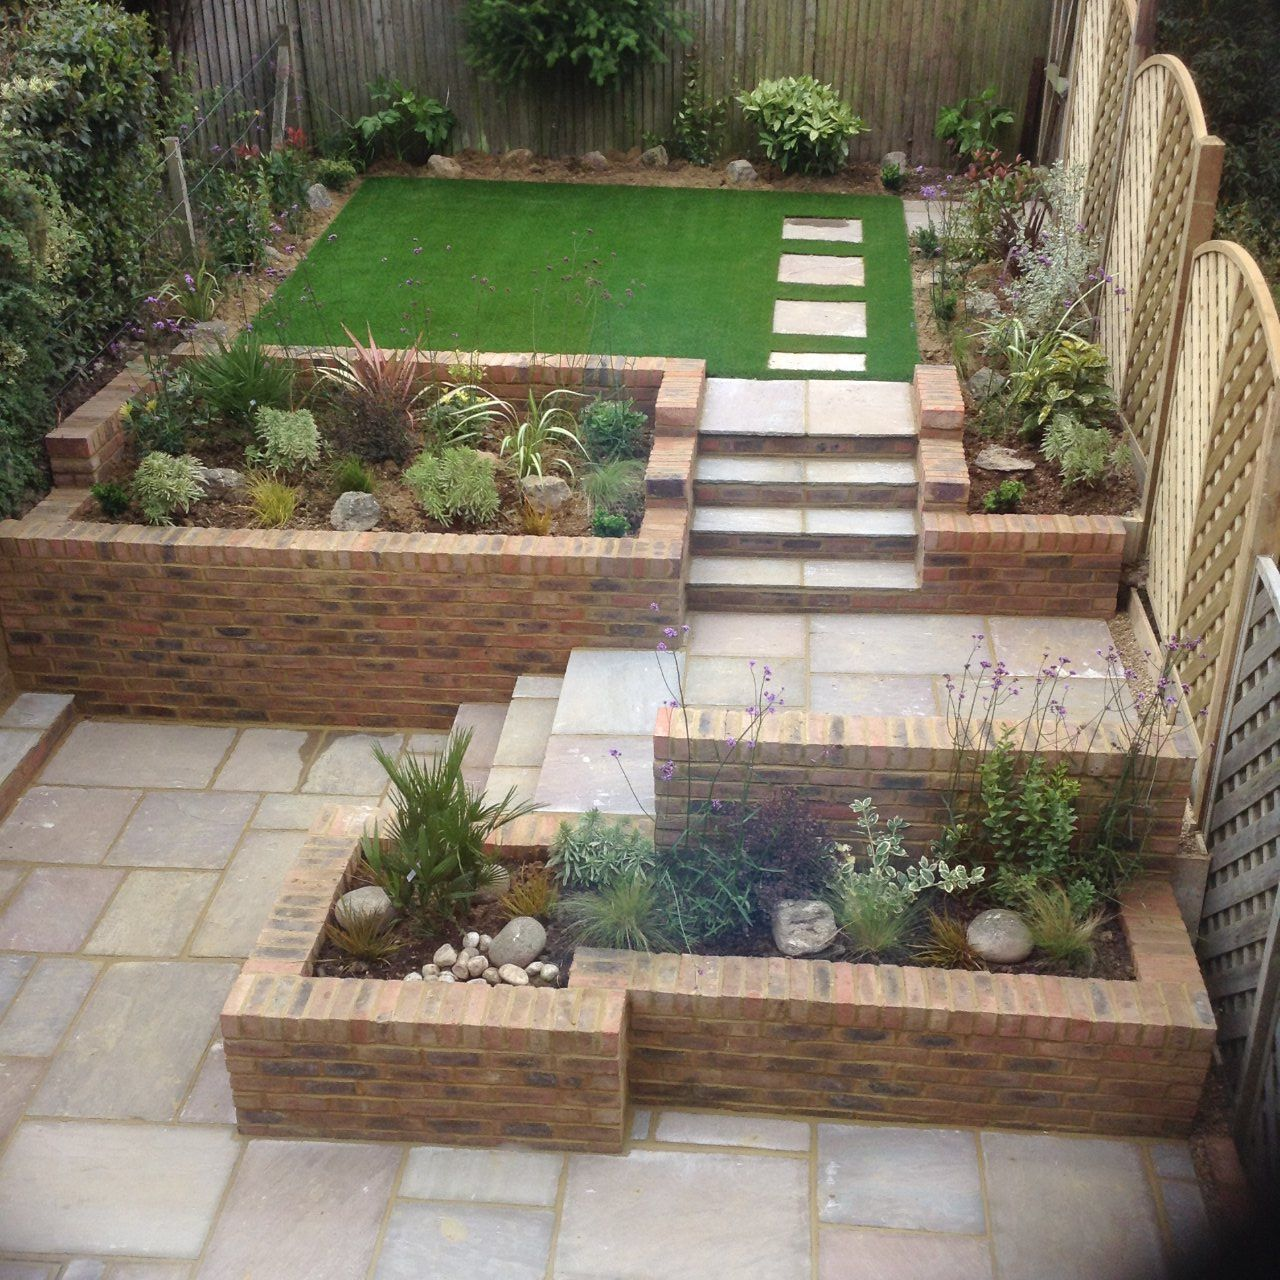 Airial view for newly designed and landscaped garden